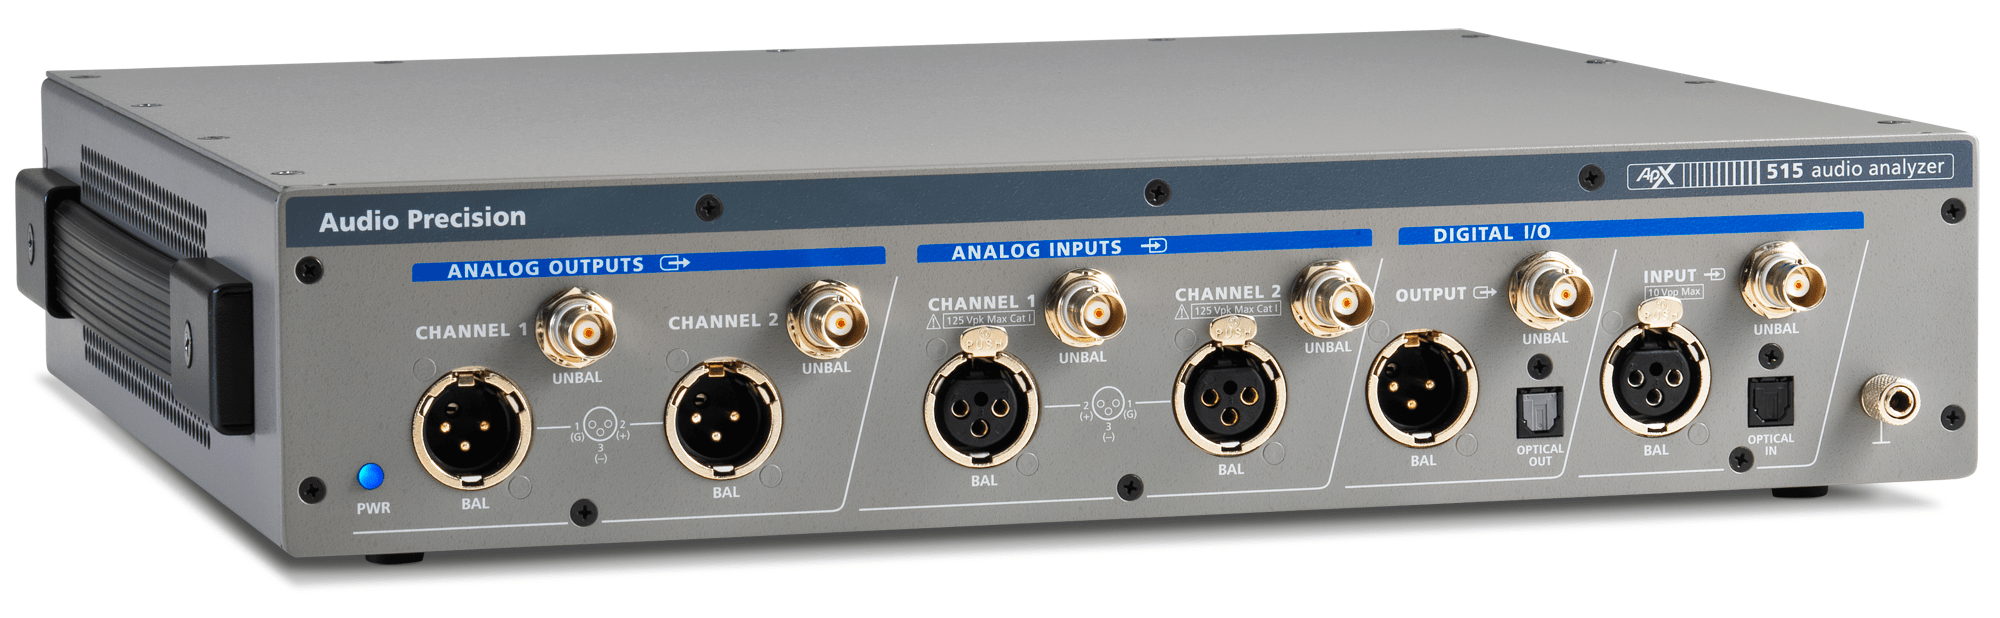 APx515 Two-Channel, Performance Audio Analyzer for Product Test and entry-level R&D applications